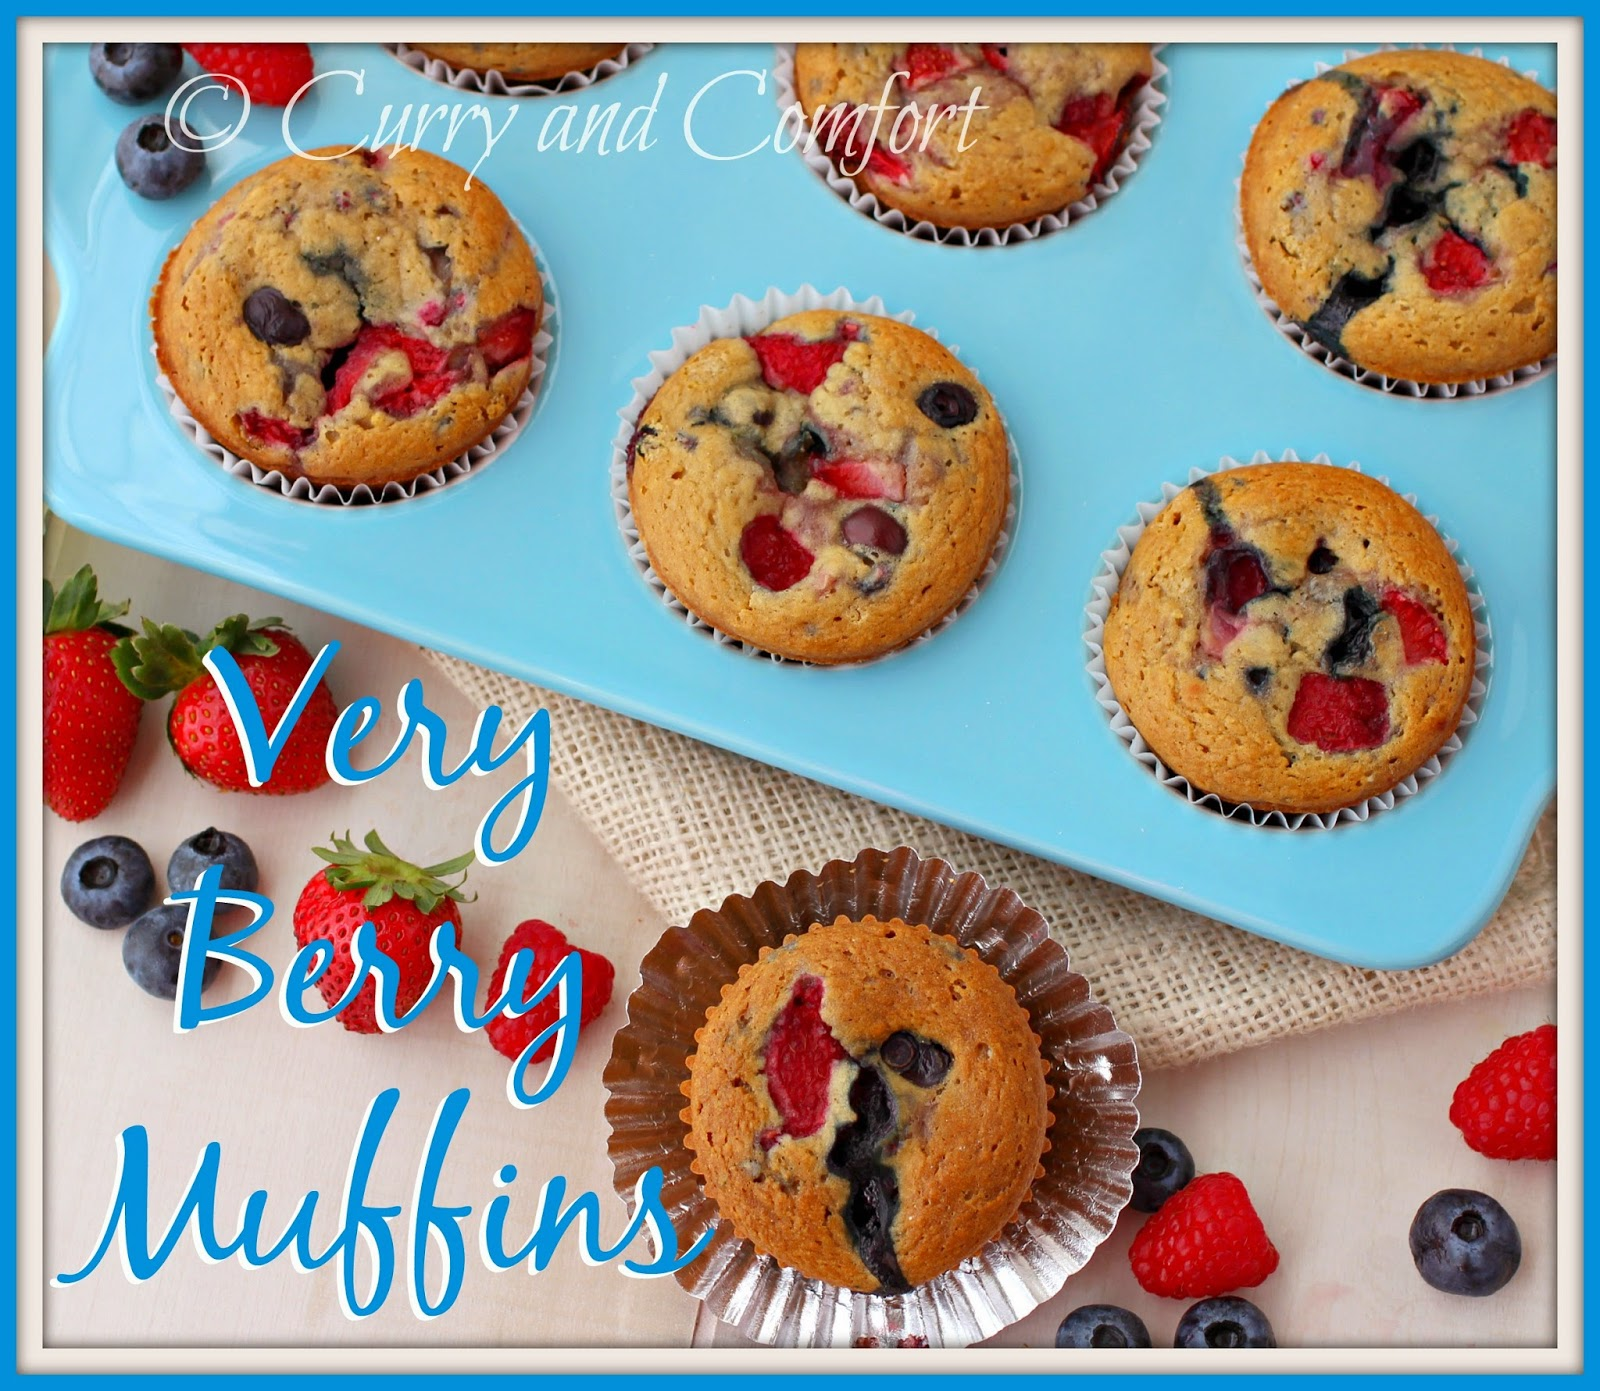 Kitchen Simmer: Very Berry Muffins